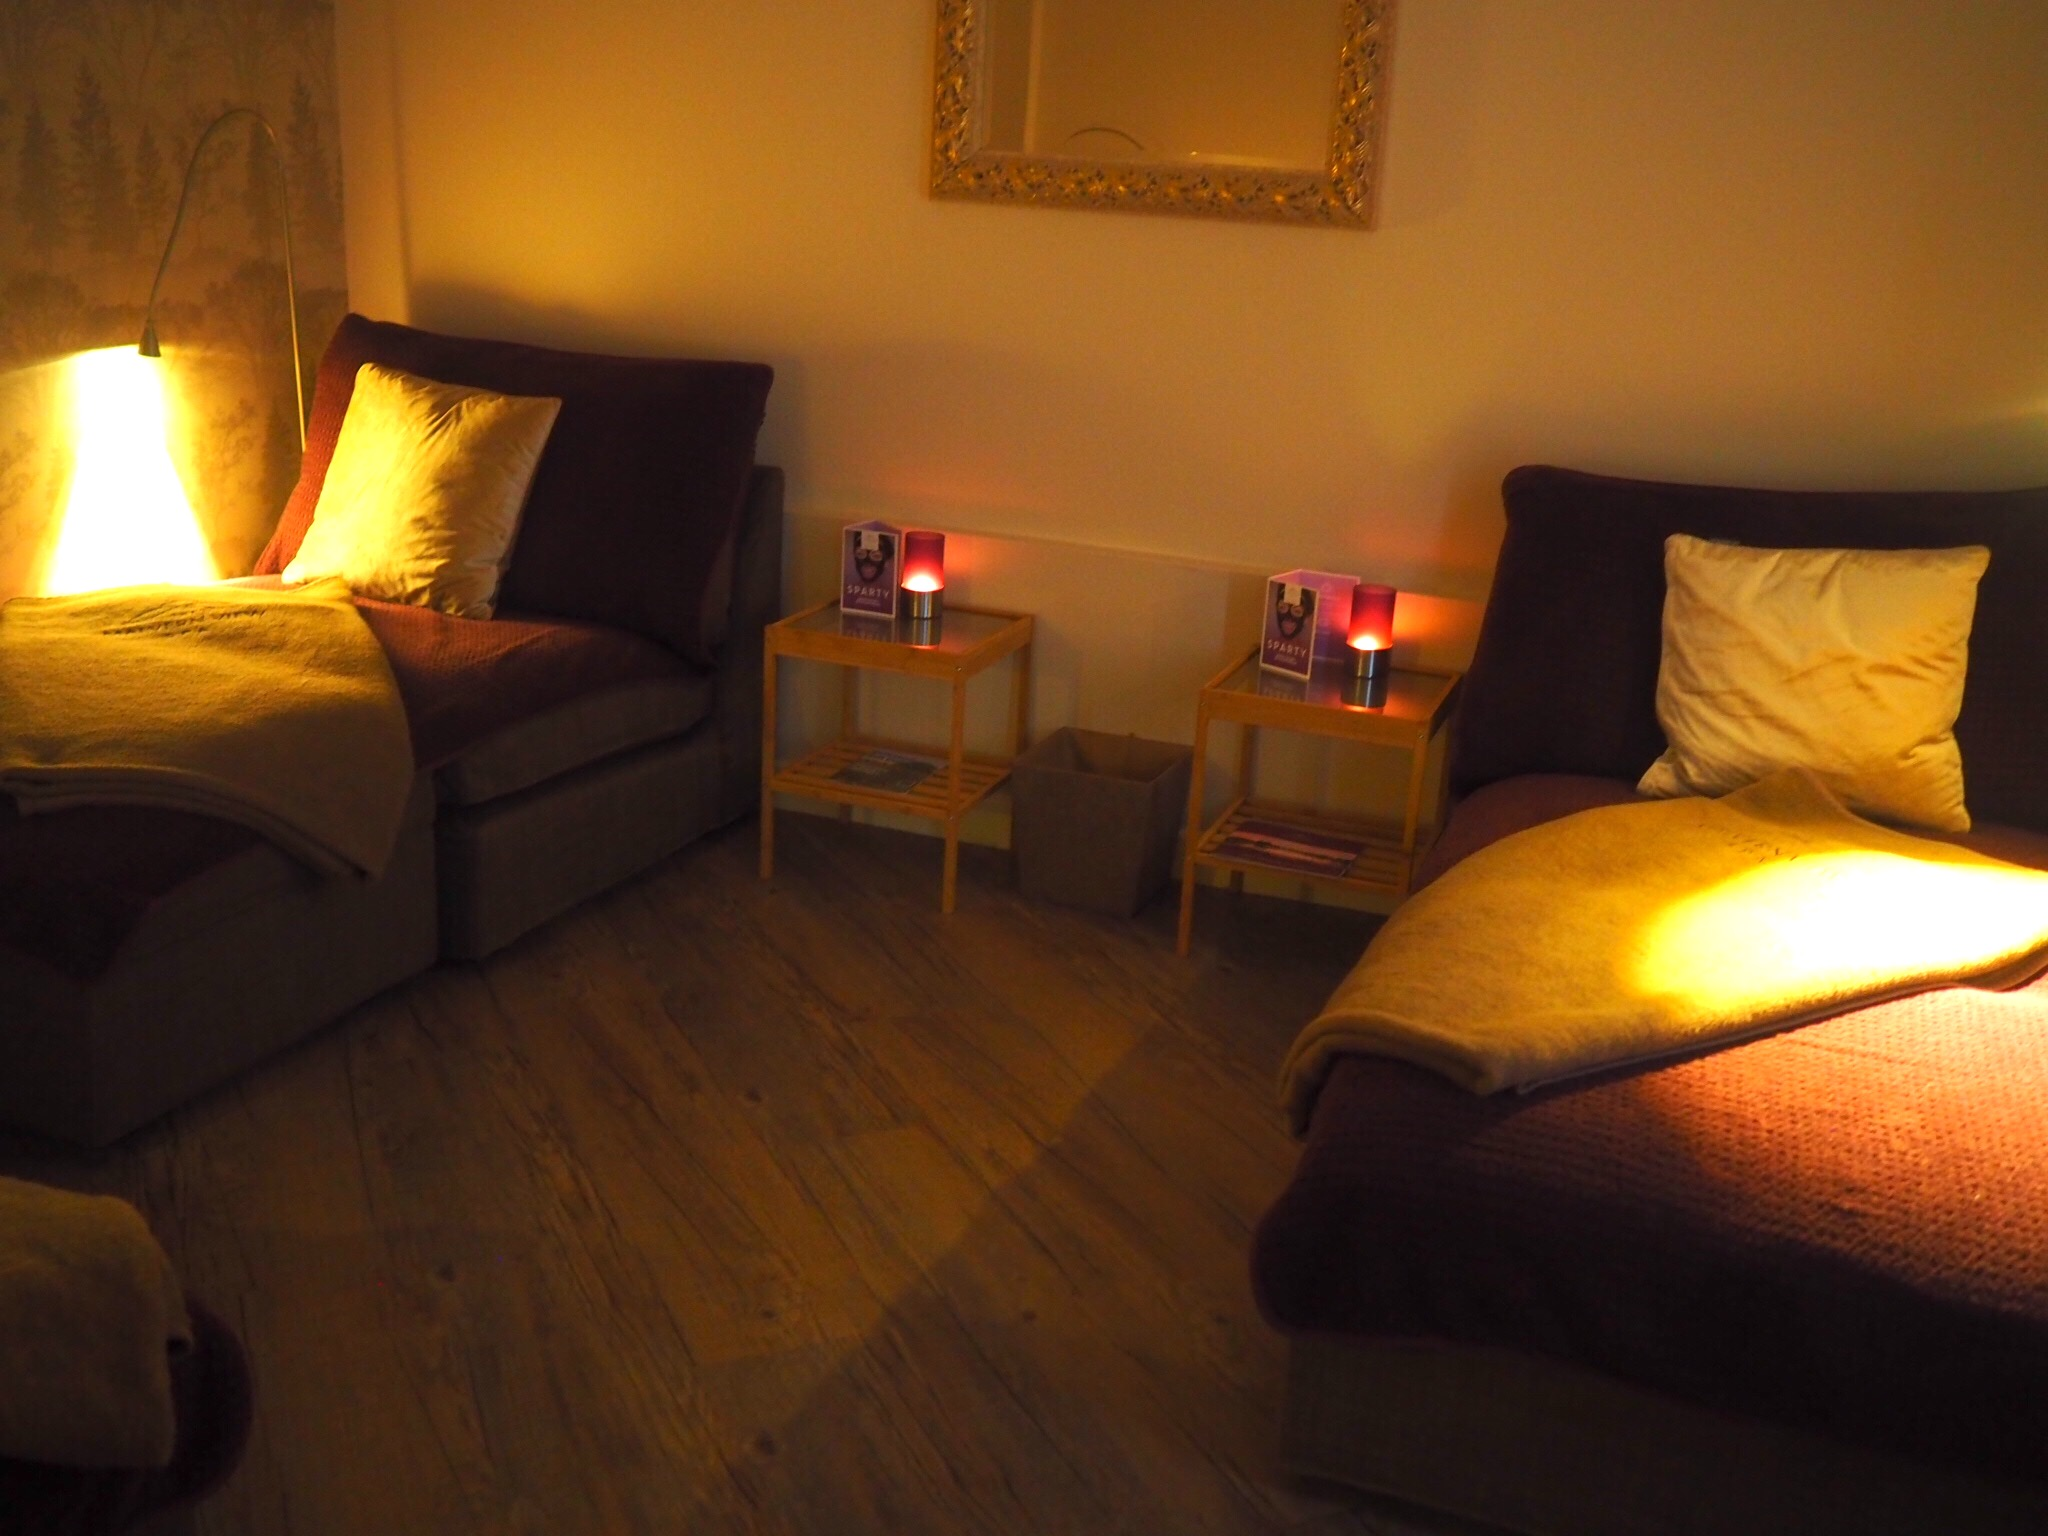 What-LizzyLoves-Bank-House-Hotel-spa-review-Worcester-spa-relaxation-room